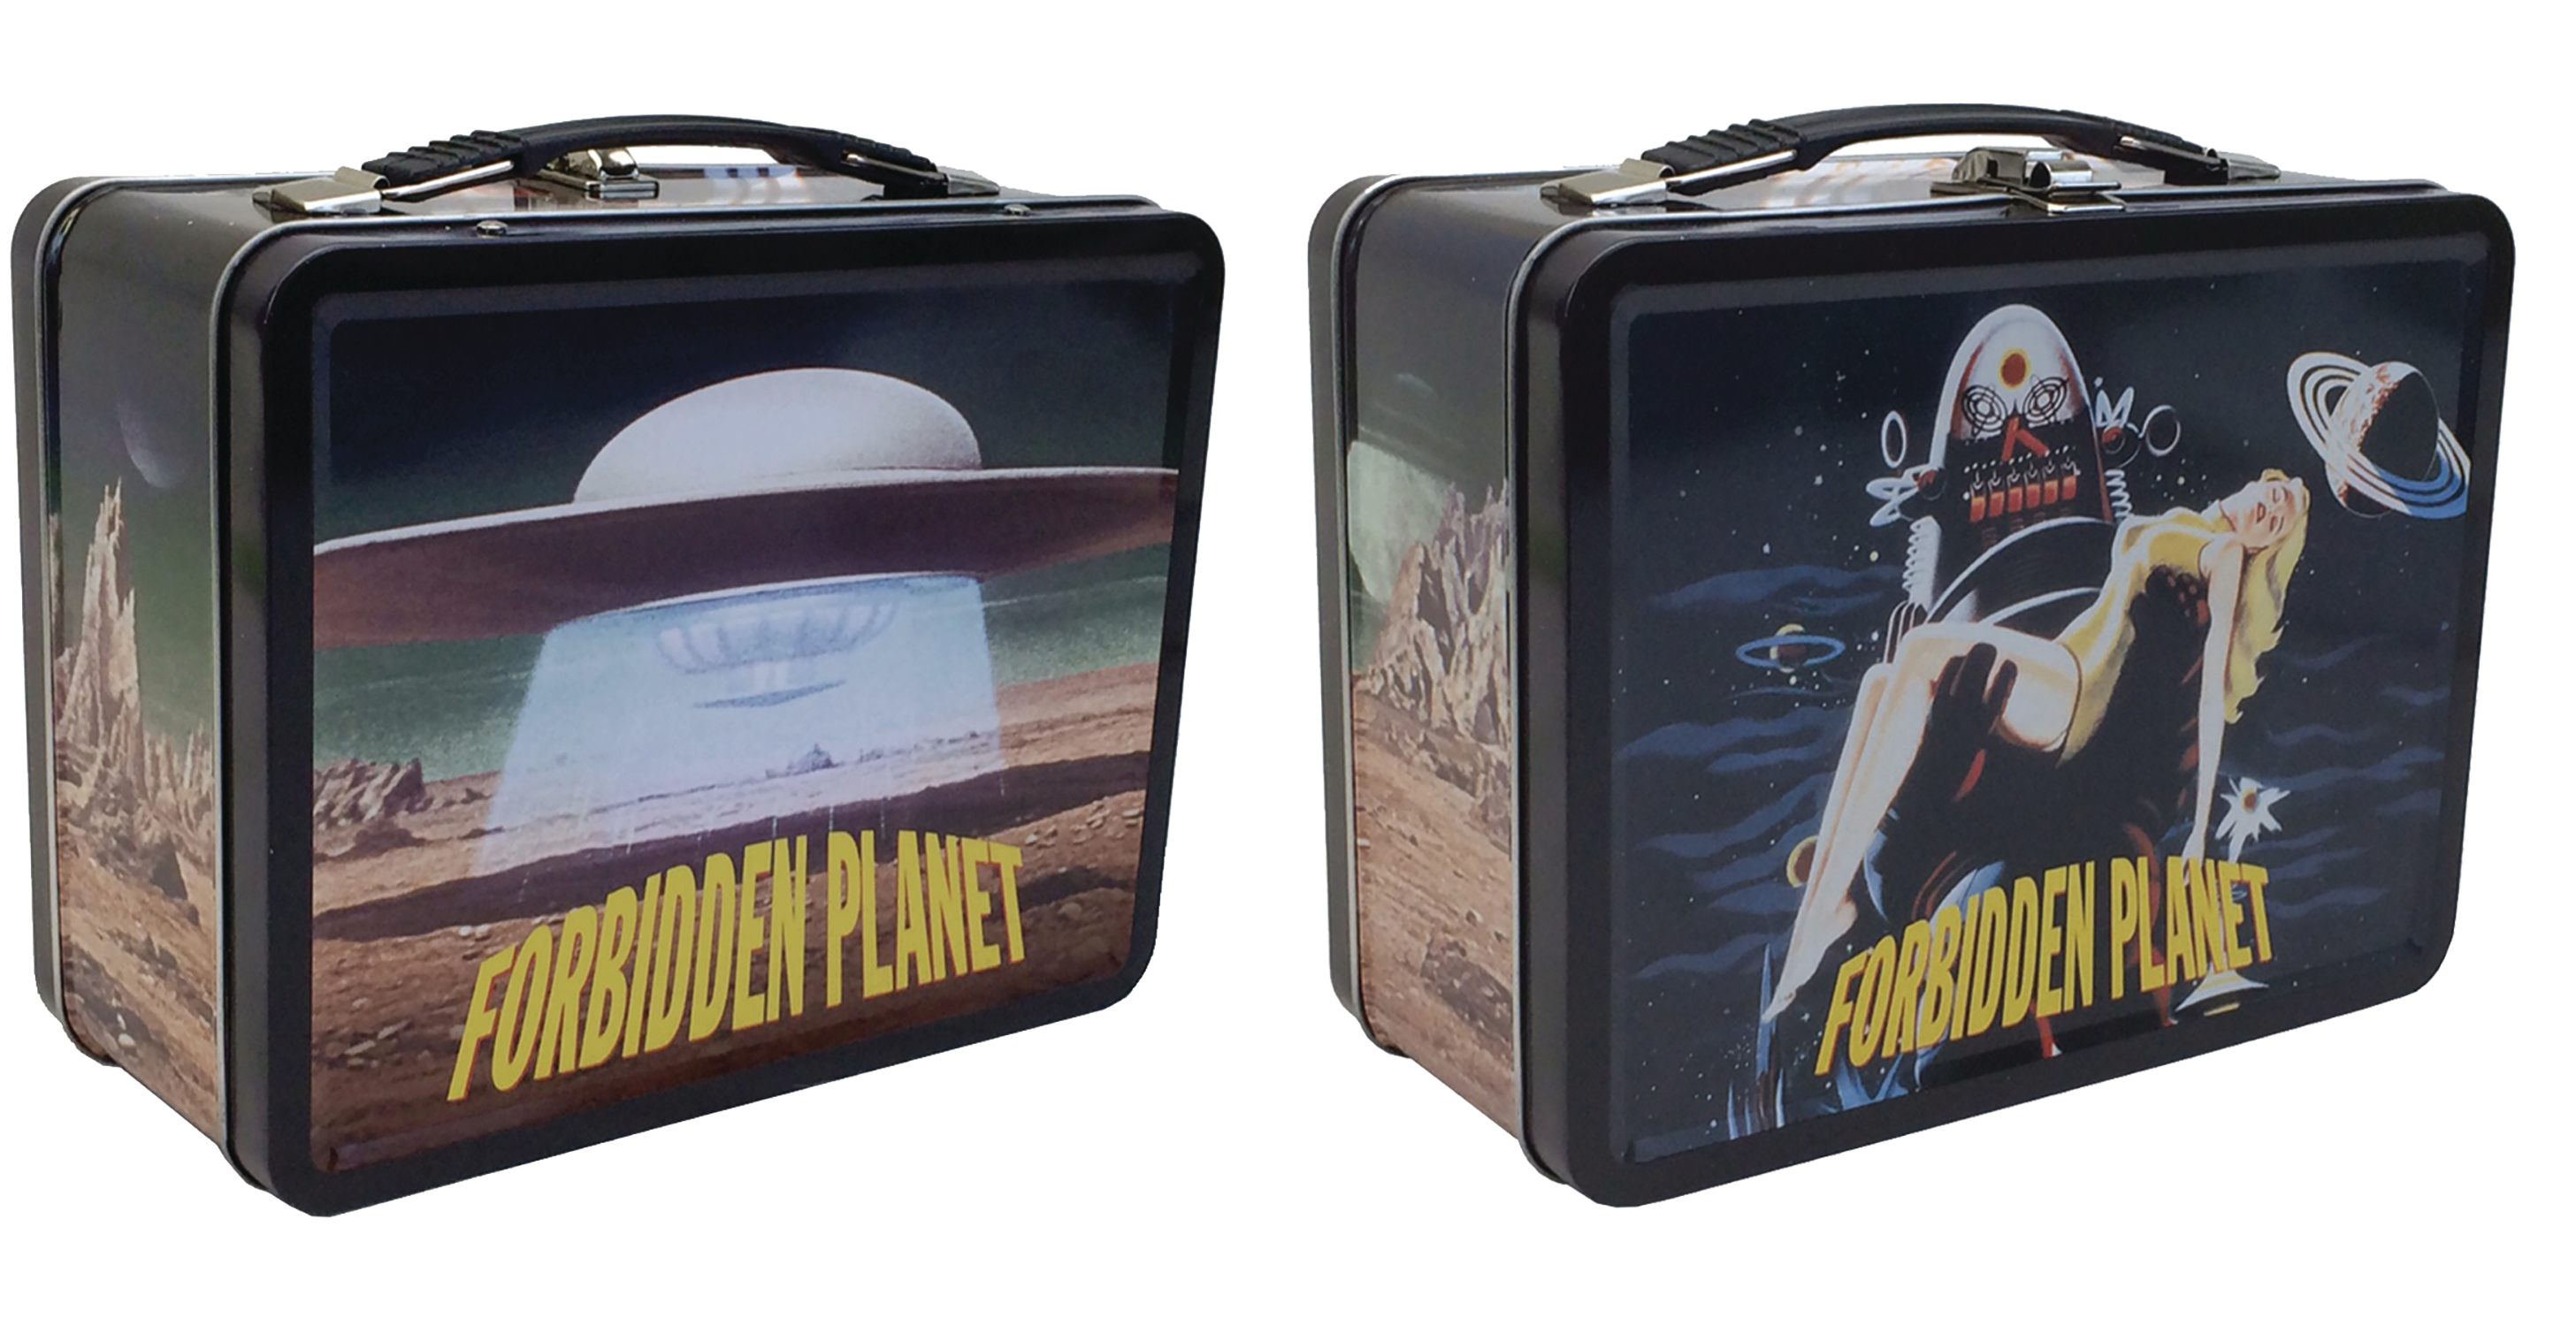 FORBIDDEN PLANET ROBBIE THE ROBOT TIN TOTE